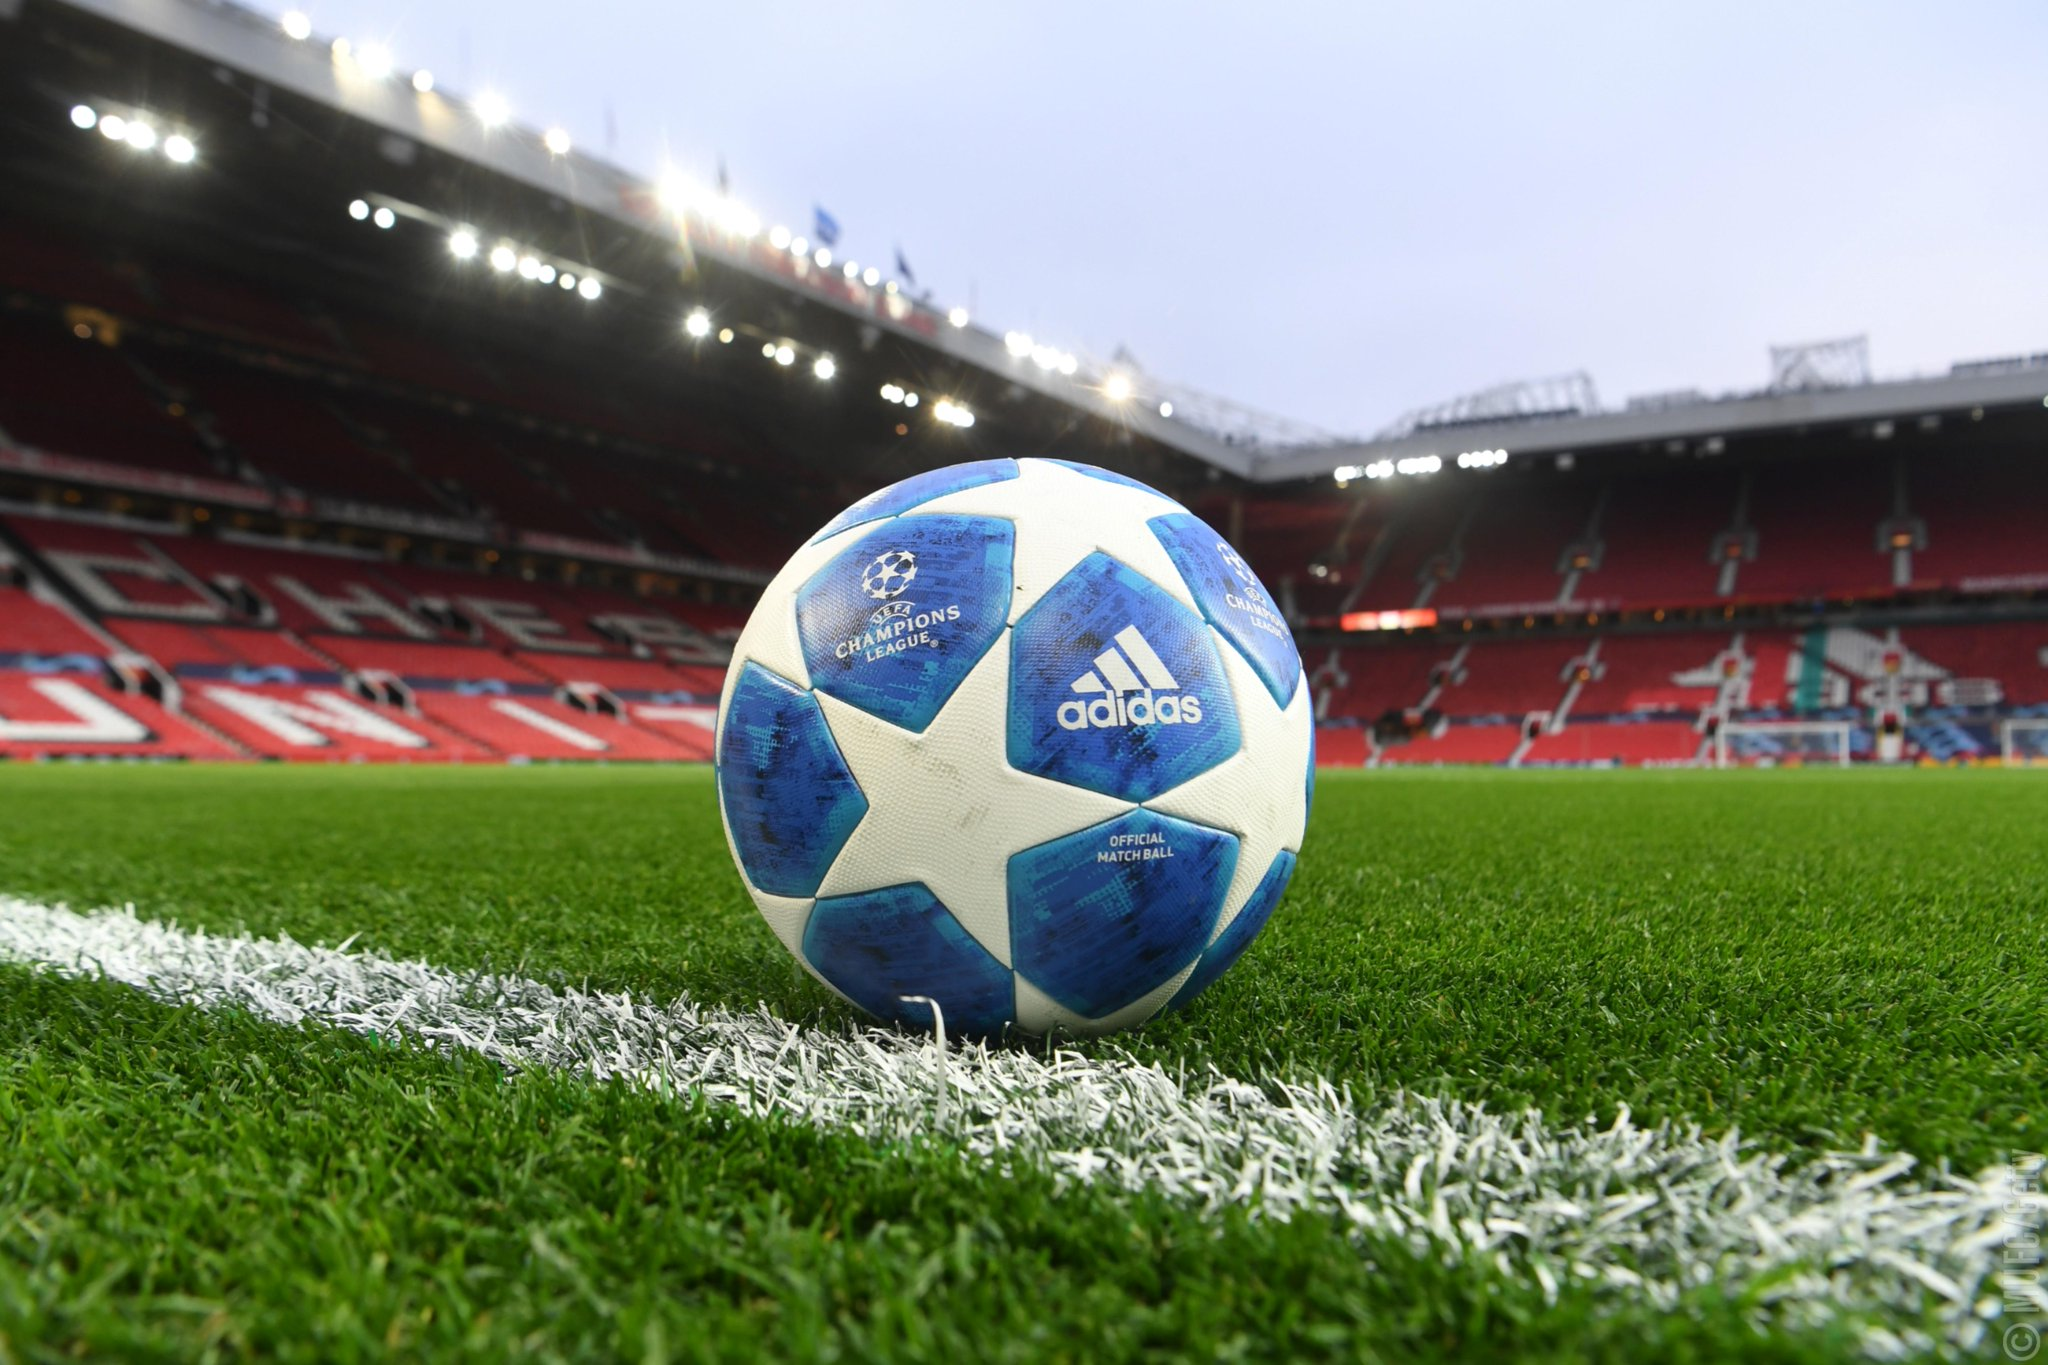 ��️ The stage is set! �� #UCL #MUFC https://t.co/Q5XtJ6ZzlD